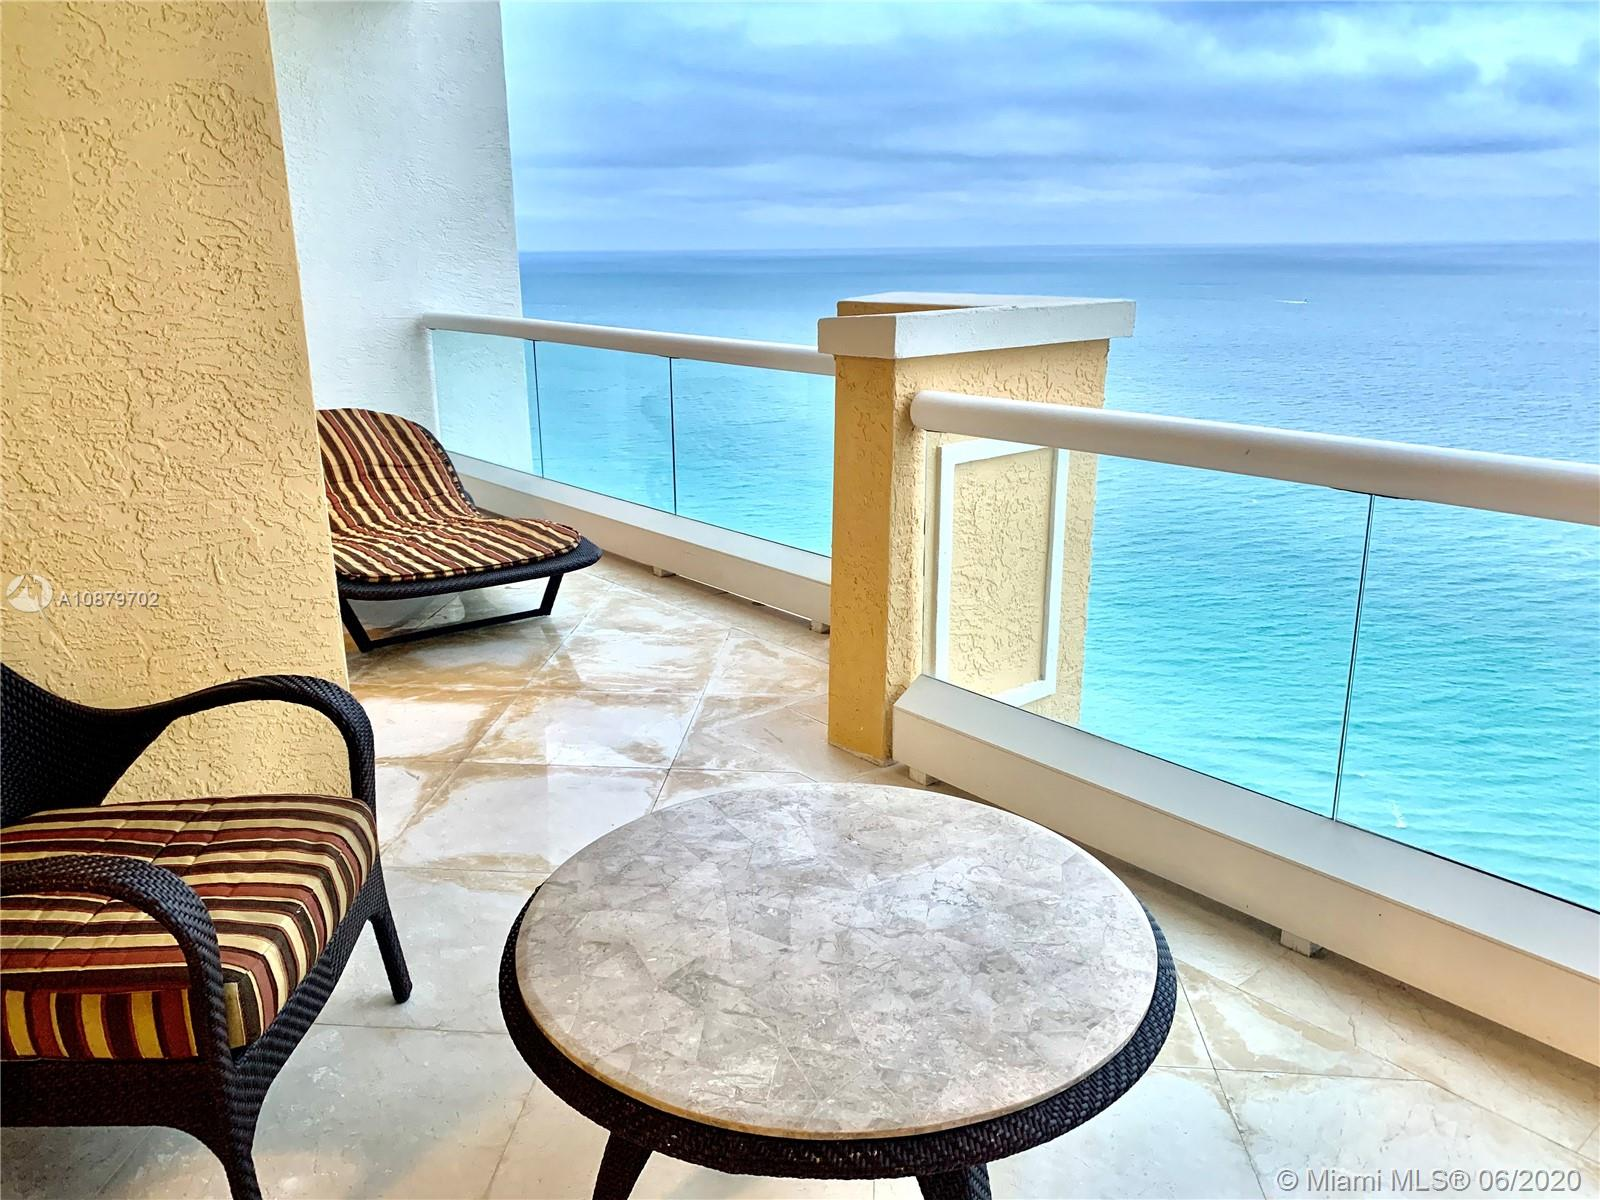 AVAILABLE NOVEMBER 10TH 2021 - BEAUTIFUL 3/3 UNIT IN LUXURY ACQUALINA WITH BREATHTAKING OCEAN AND INTRACOASTAL VIEW AND 5 STAR AMENITIES!!! Freshly painted and renovated! 3 bedrooms and 3 bathrooms 2173 square feet, marble floors, fully furnished AS-IS! Currently rented 24 hrs notice to view